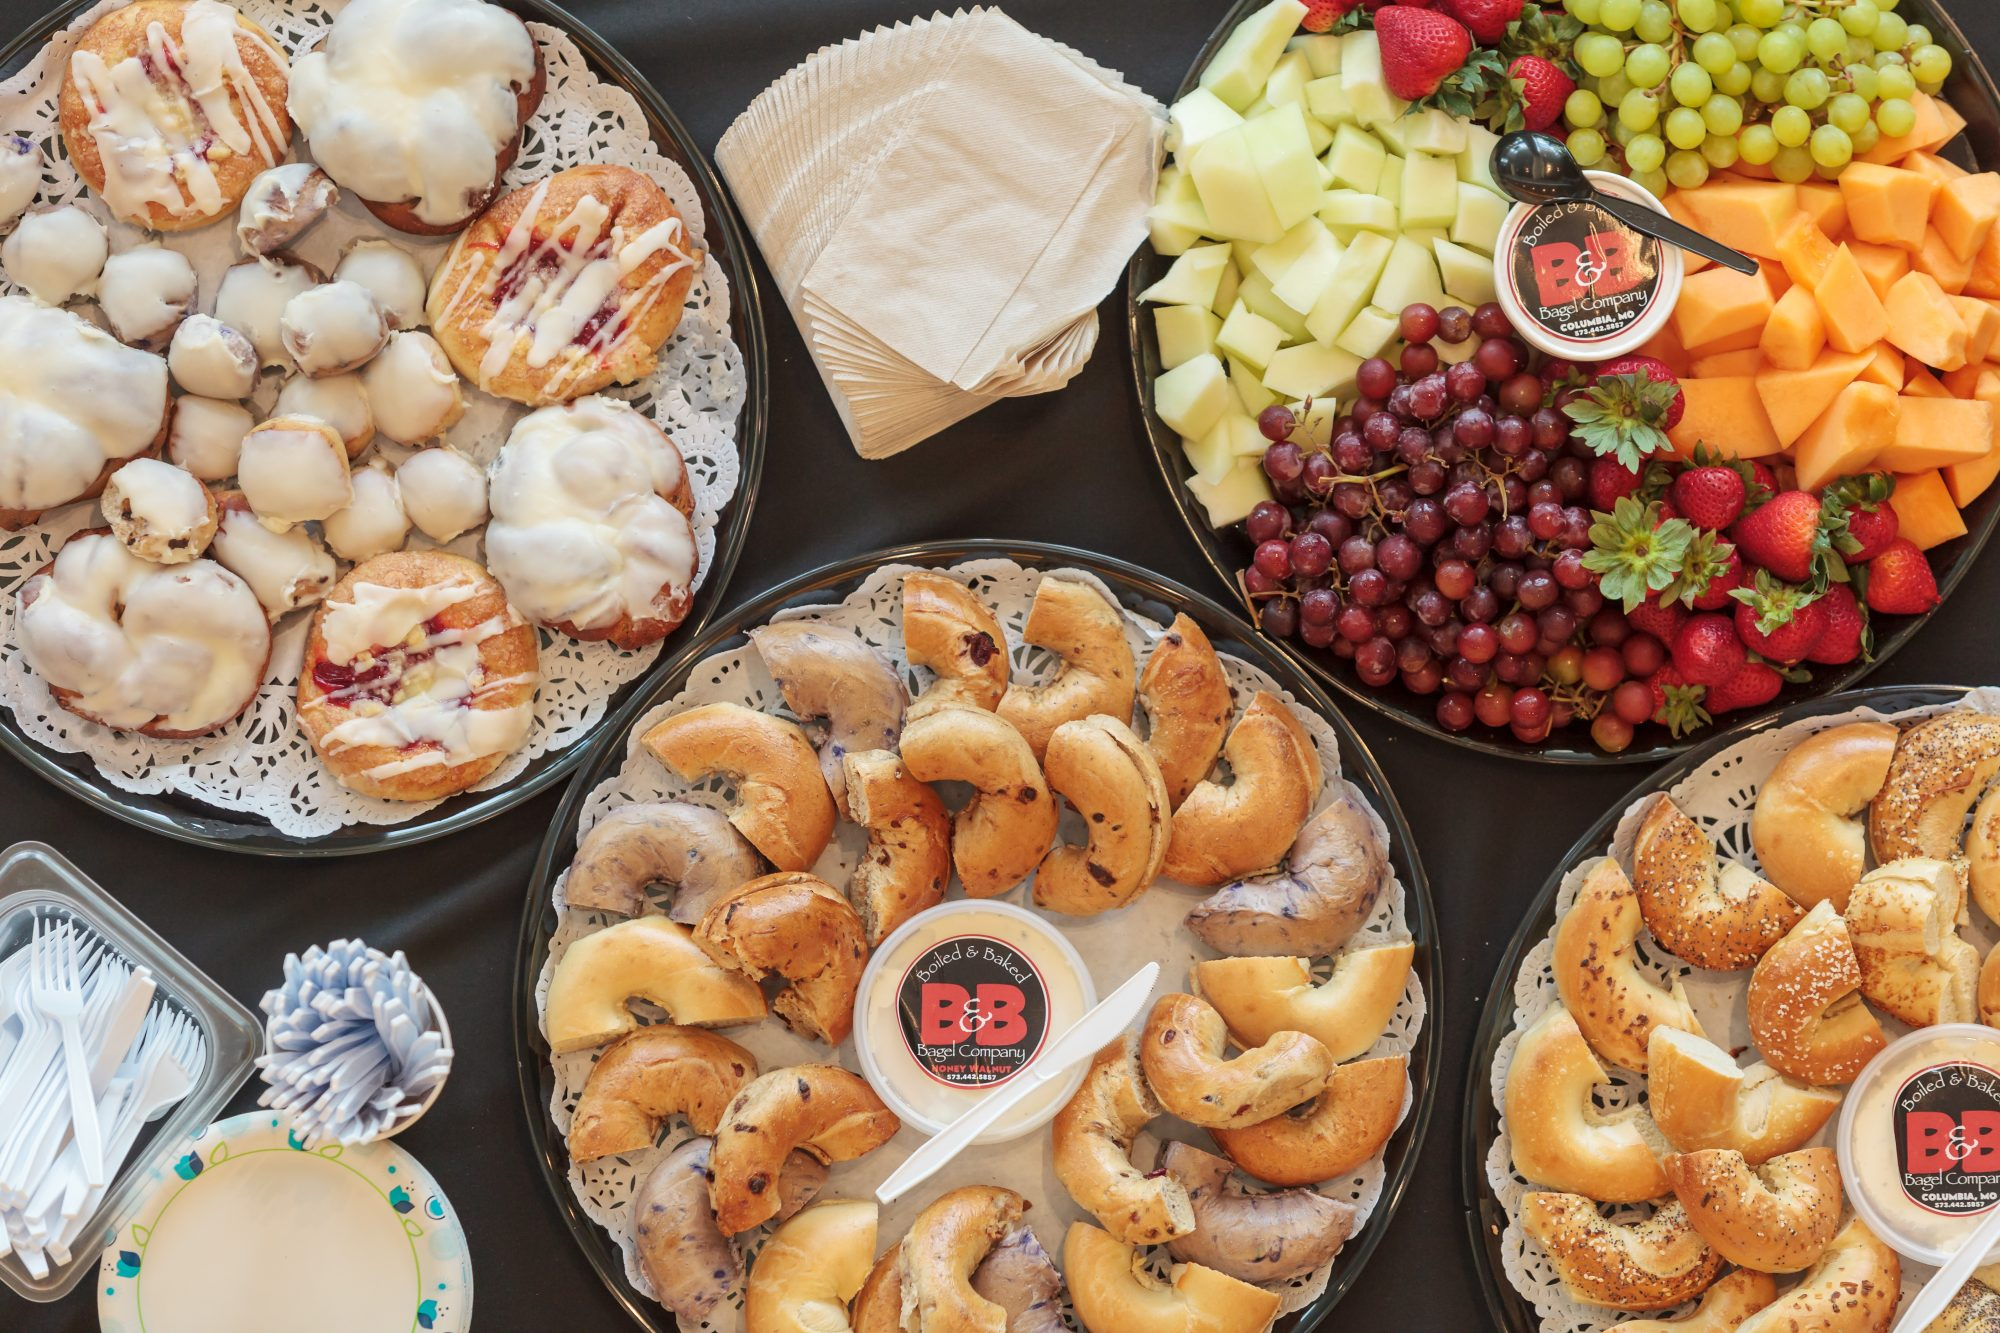 catering bagels pastries fruit